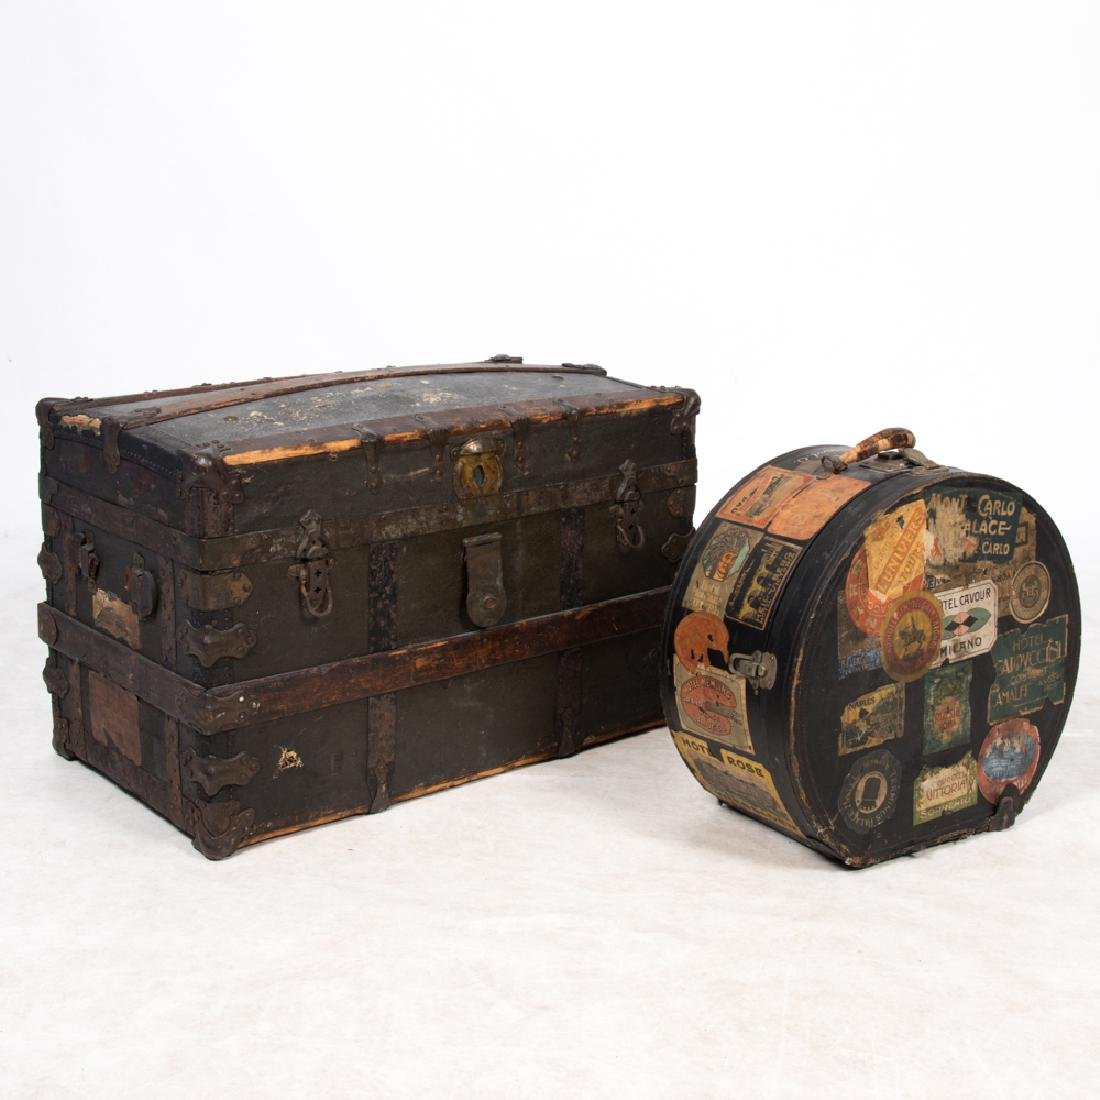 An Antique Domed Trunk, 19th-20th Century,